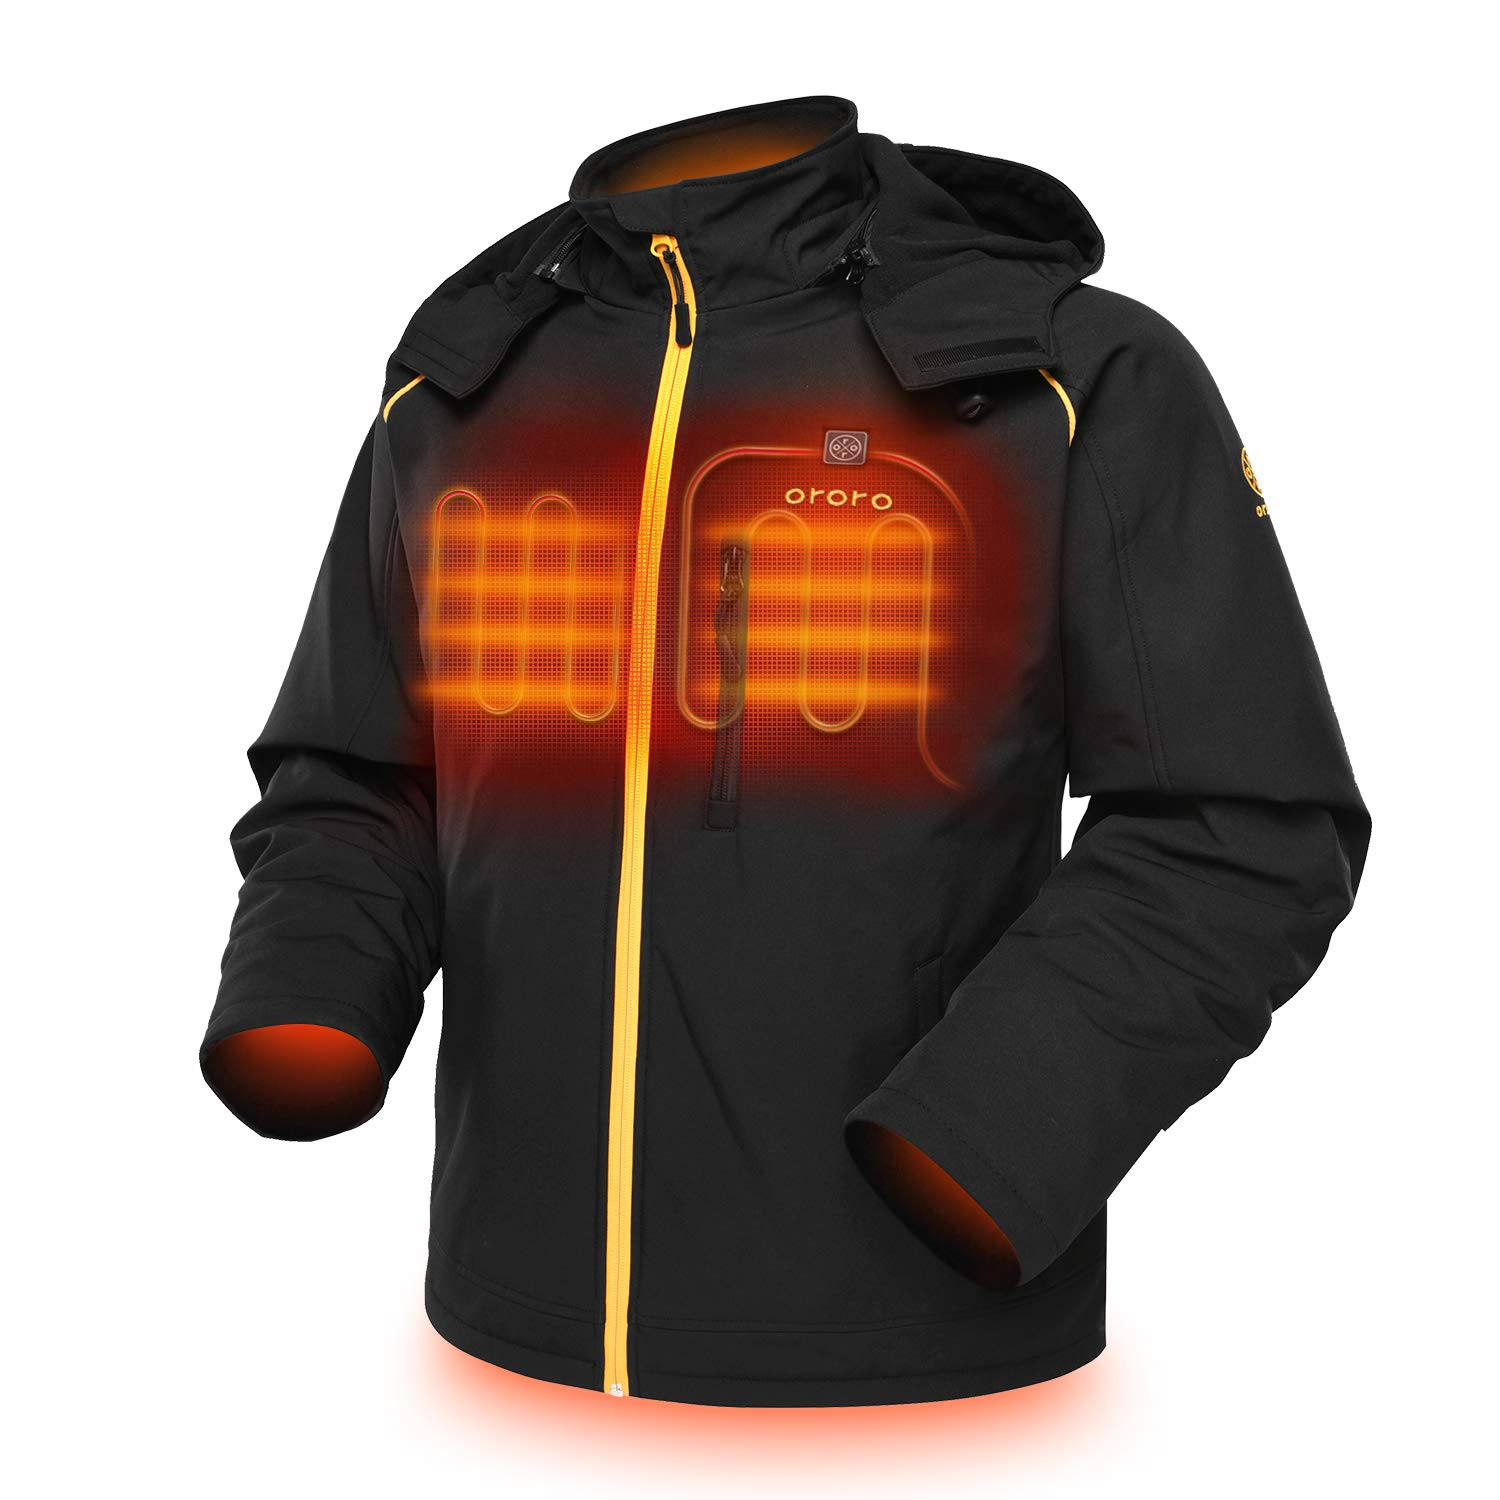 ORORO Men's Soft Shell Heated Jacket with Detachable Hood and Battery Pack (Black/Gold, XXL) by ORORO